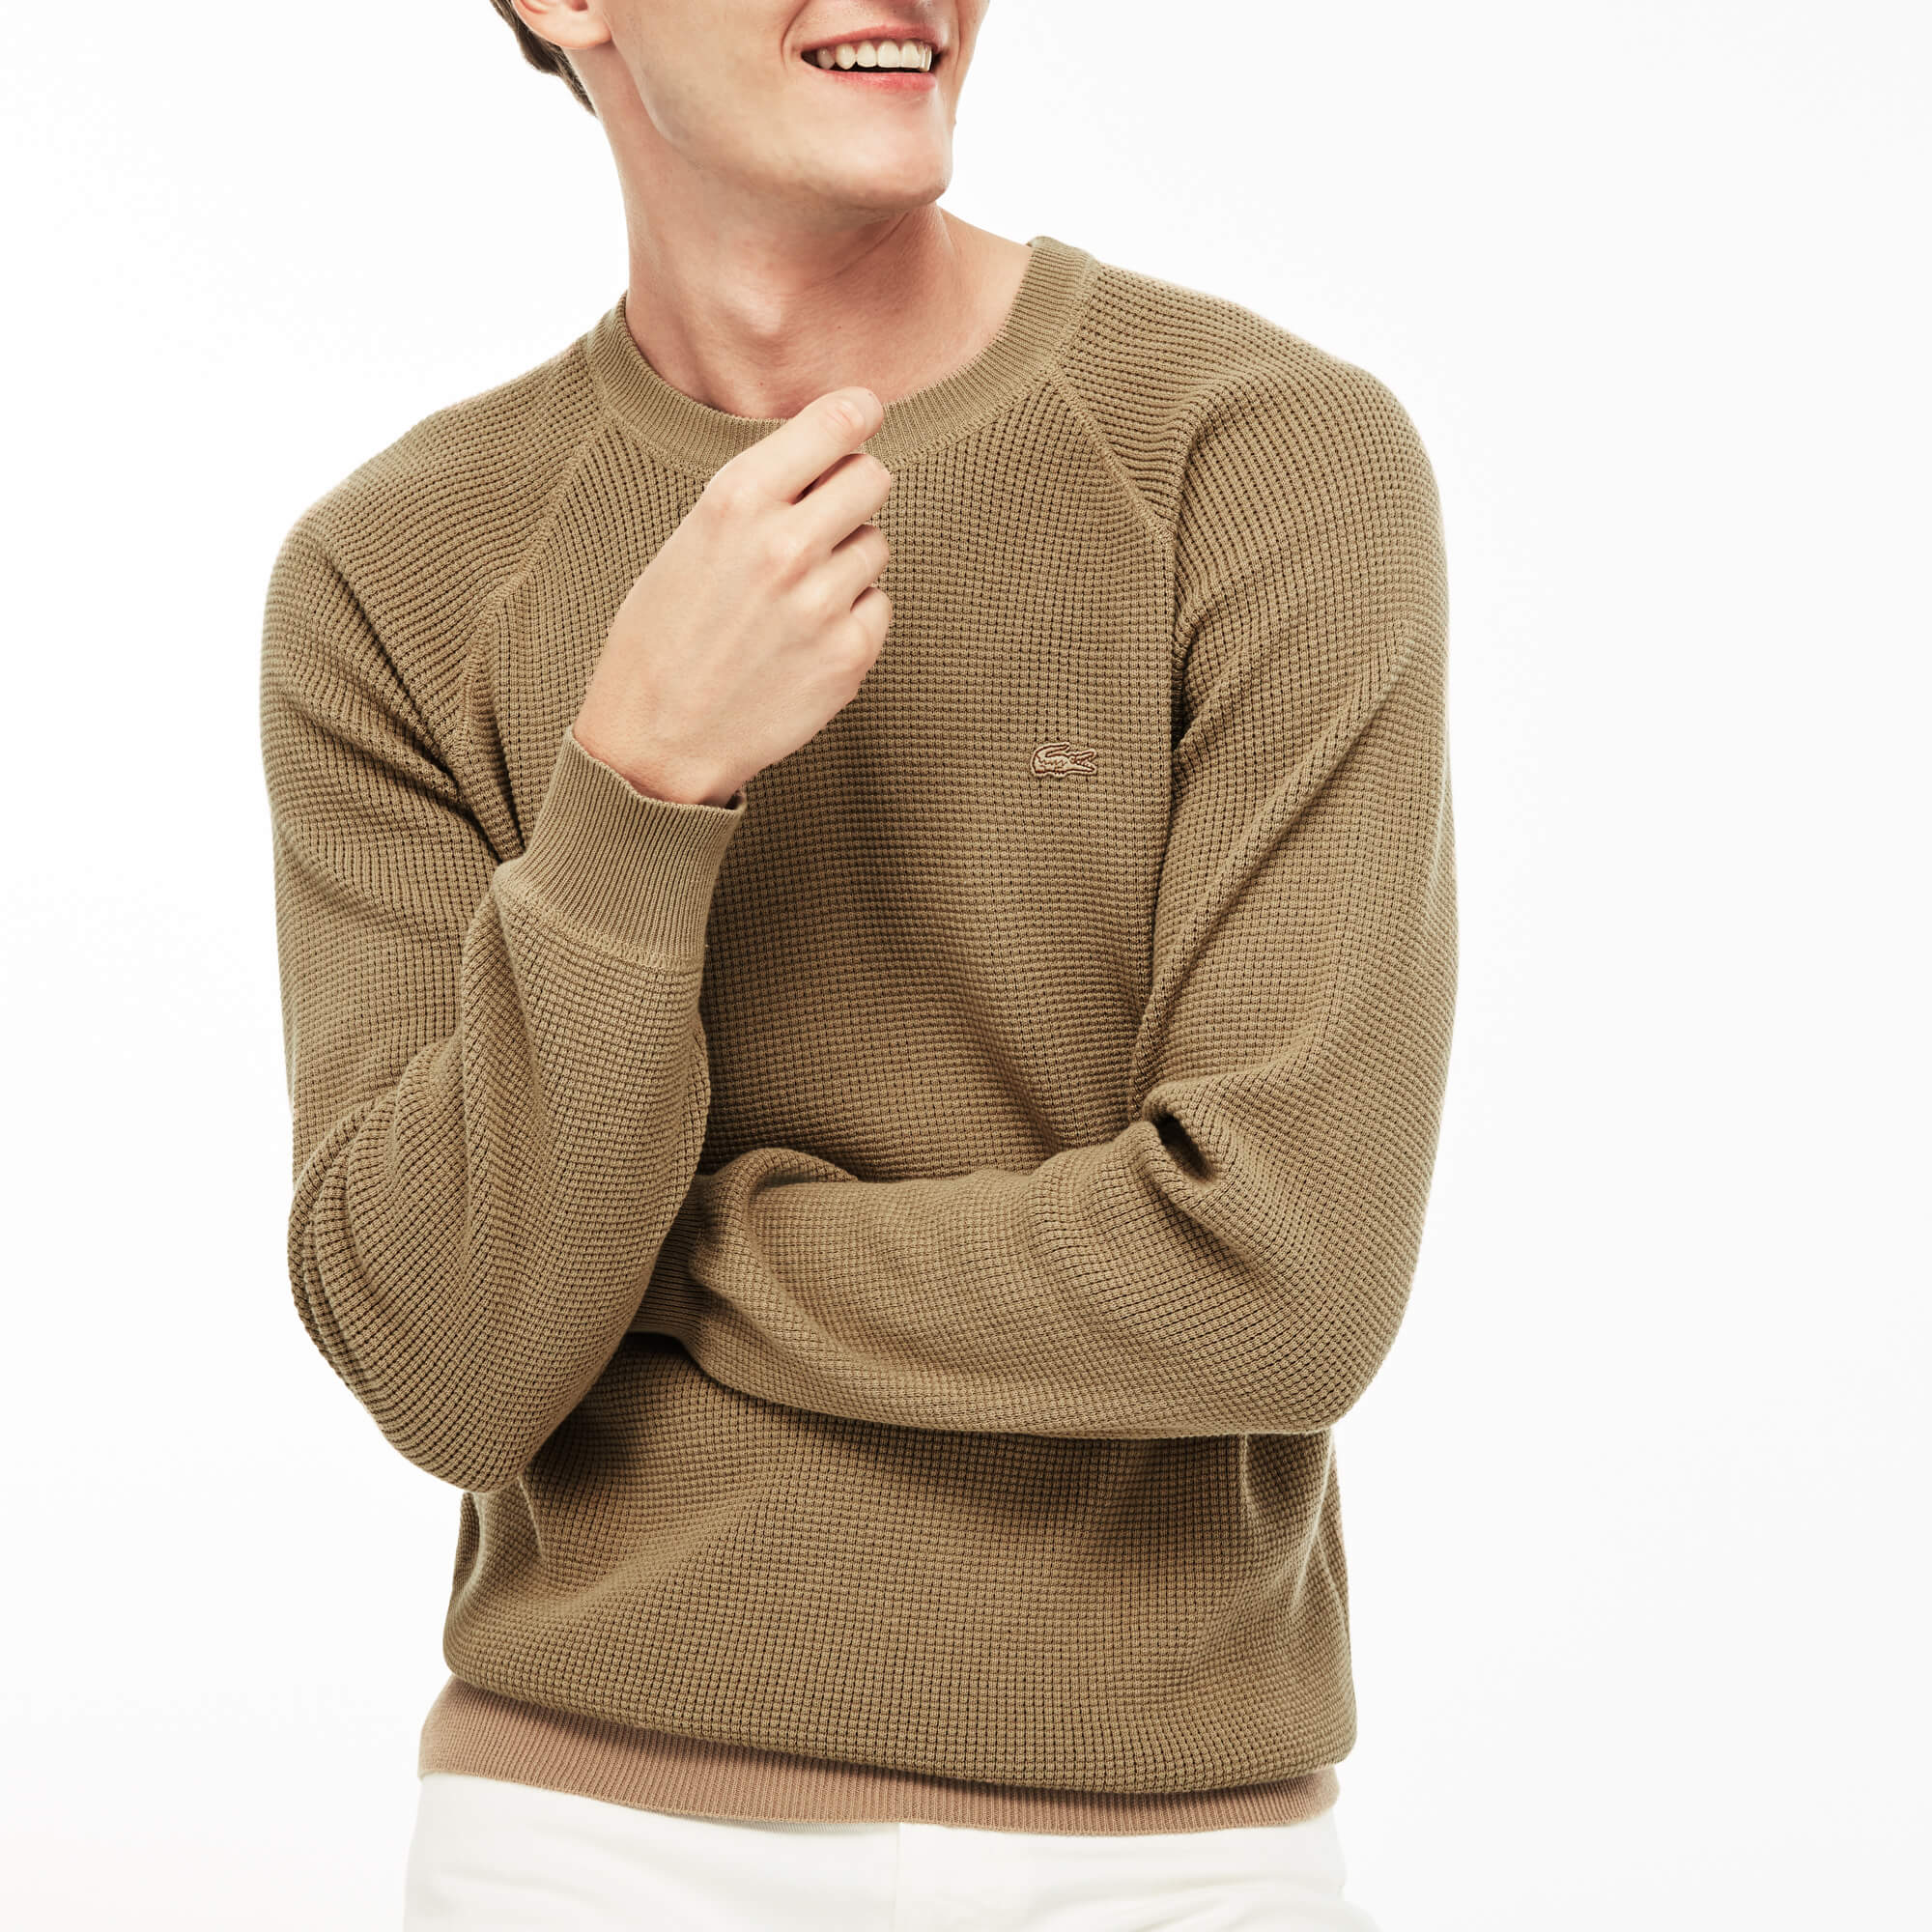 Men's Crew Neck Honeycomb Cotton Crepe Sweater